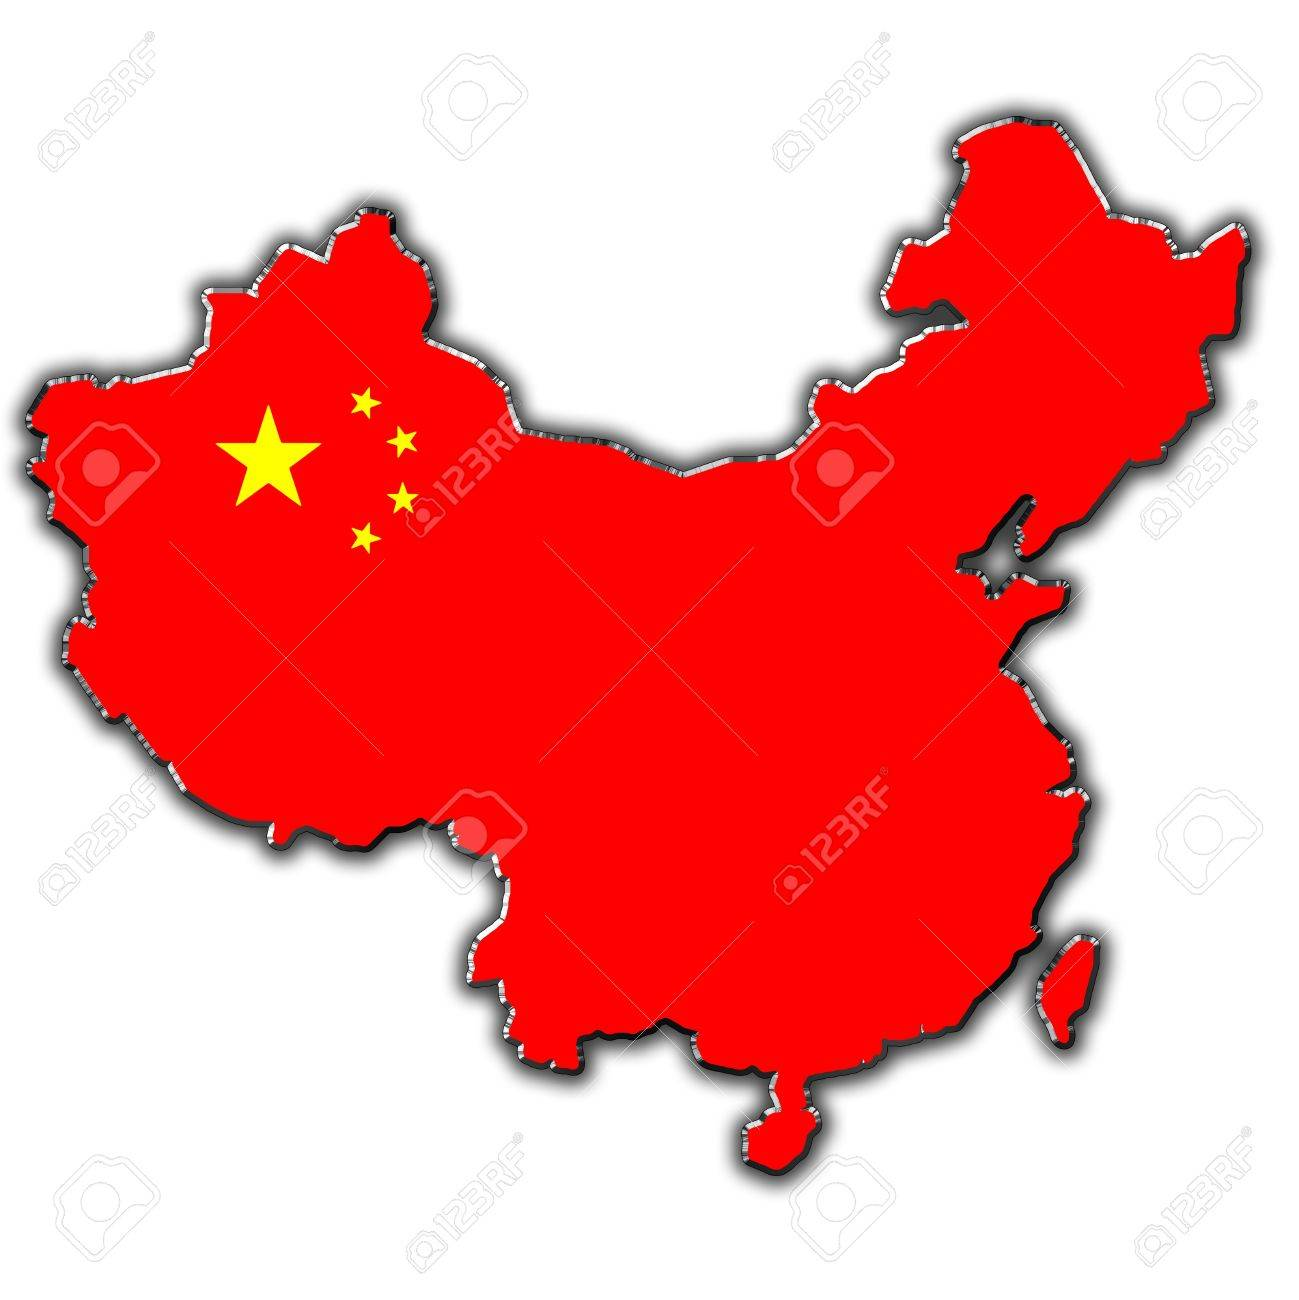 Outline Map Of China Covered In Chinese Flag Stock Photo, Picture ...